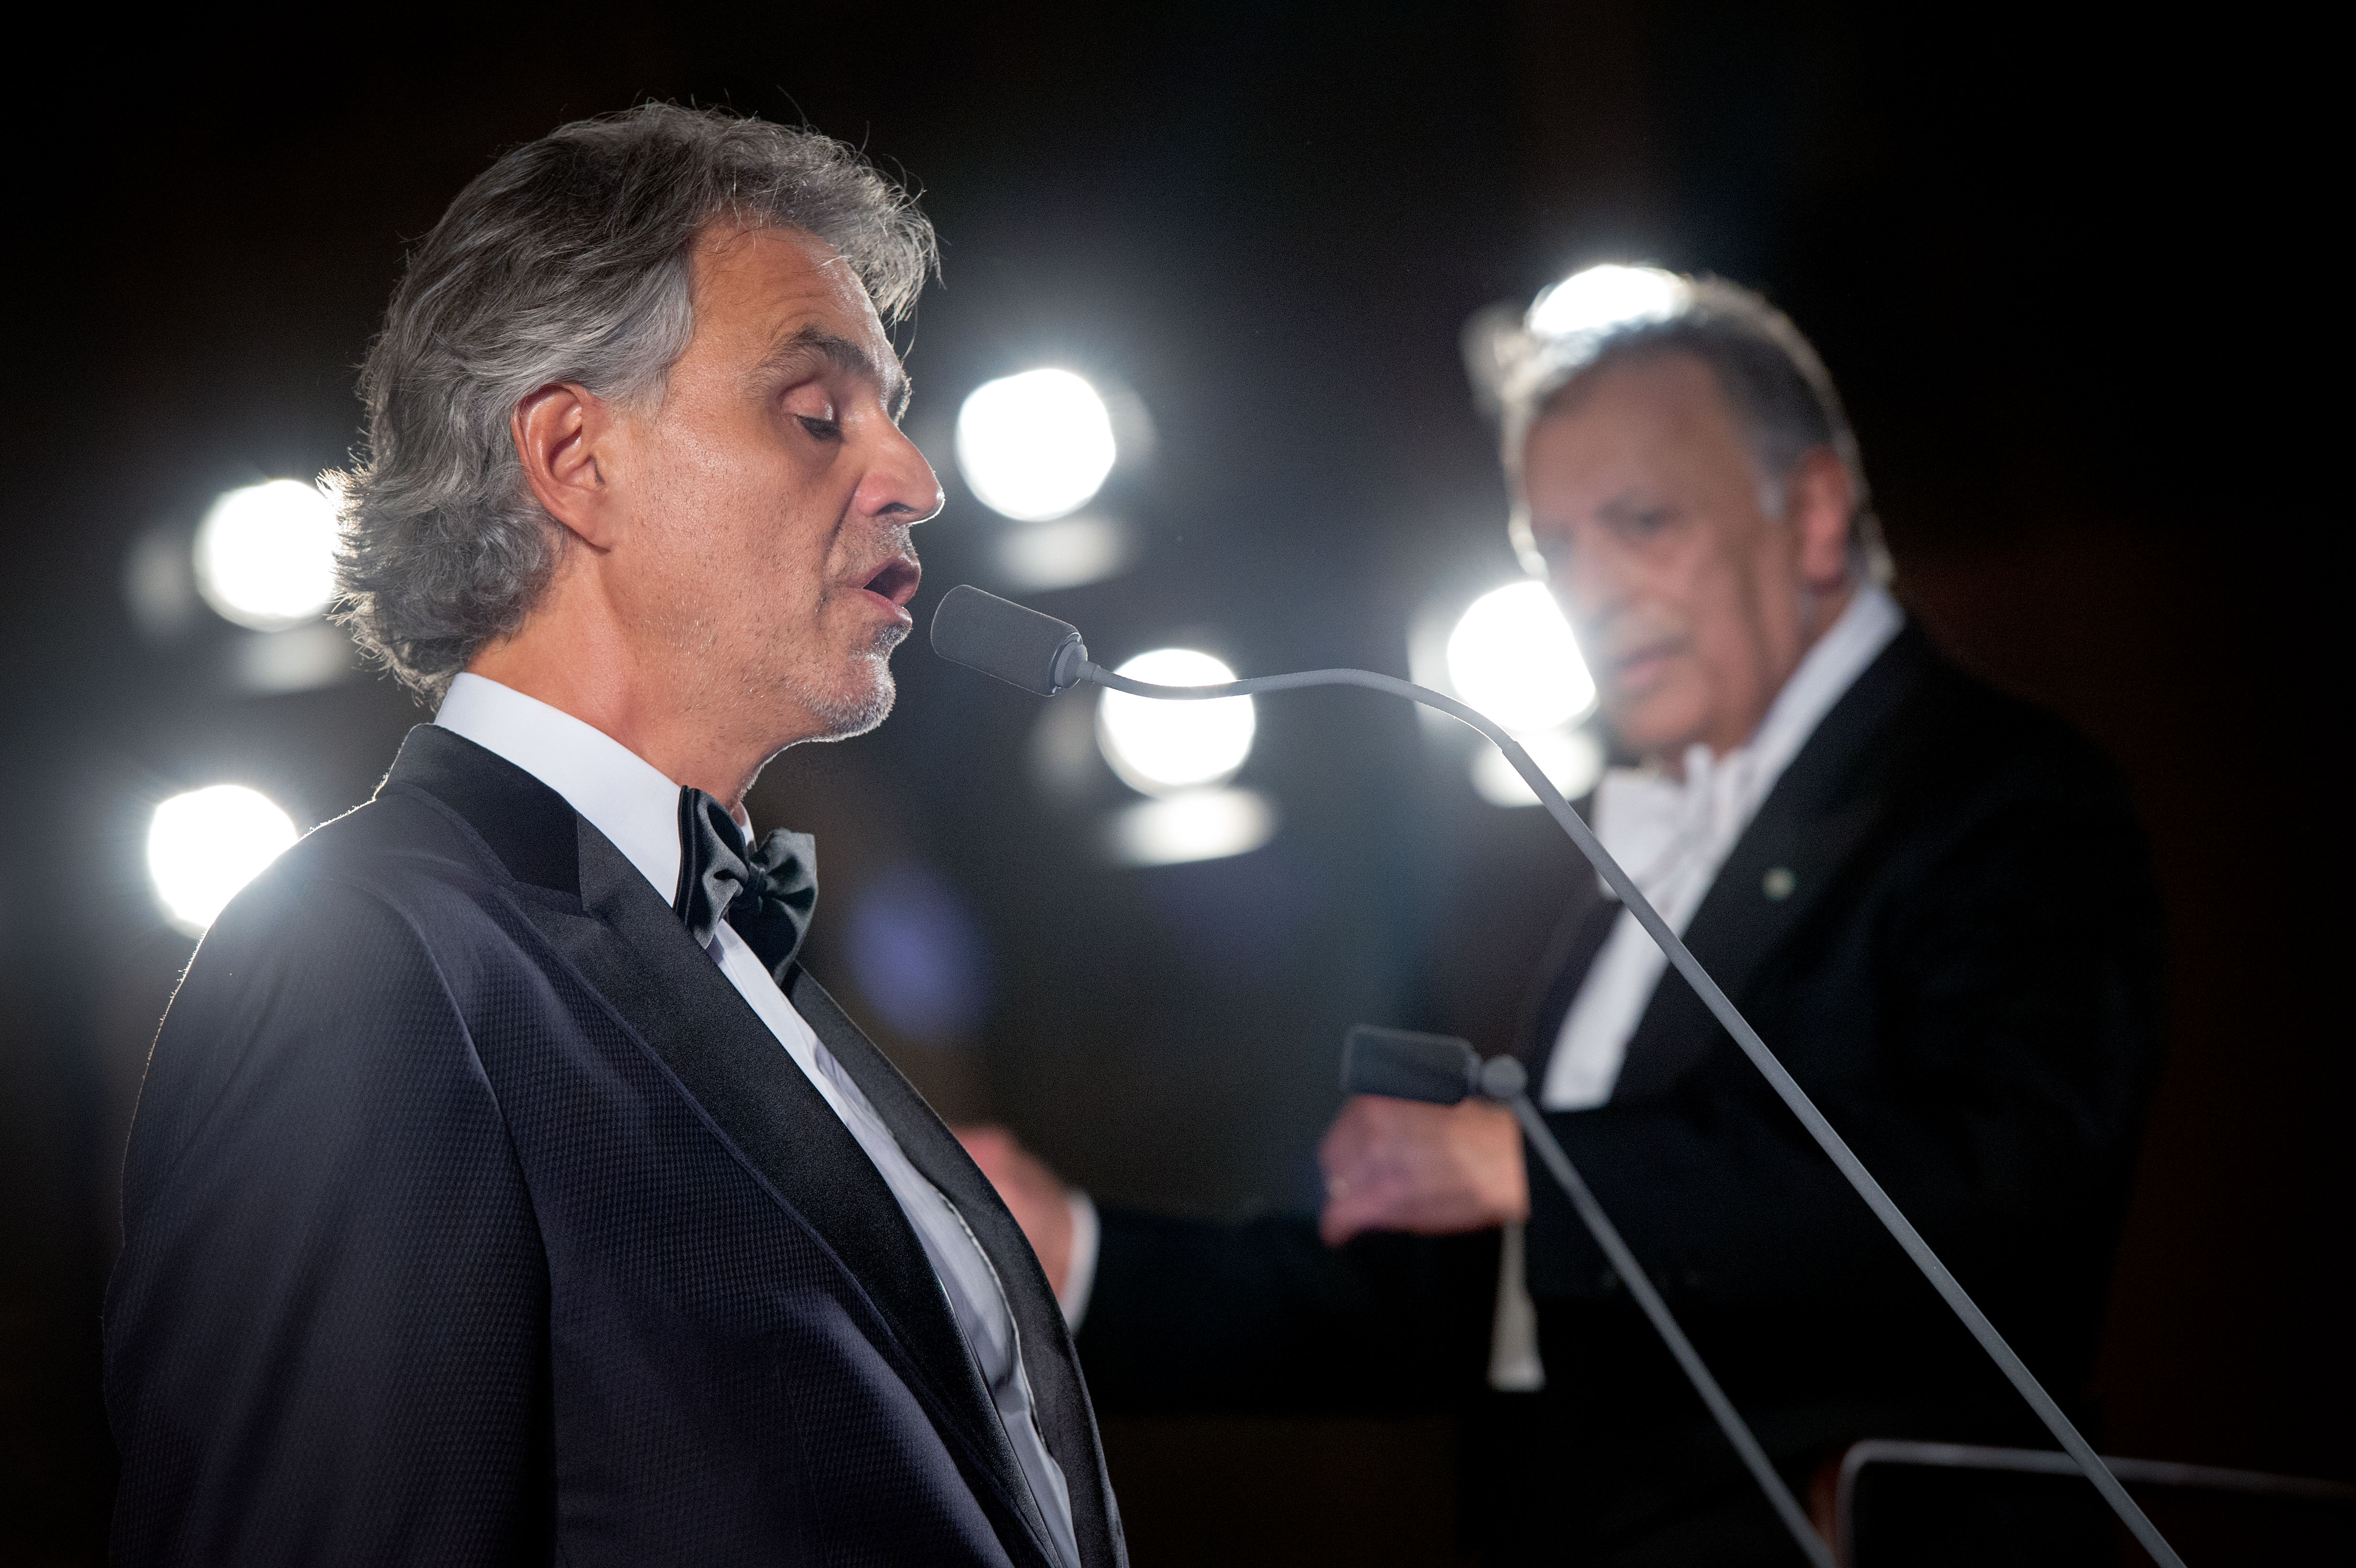 Bibi Busenblitzer Roter Teppich Ebay Auktion Celebrity Fight Night Mit Andrea Bocelli